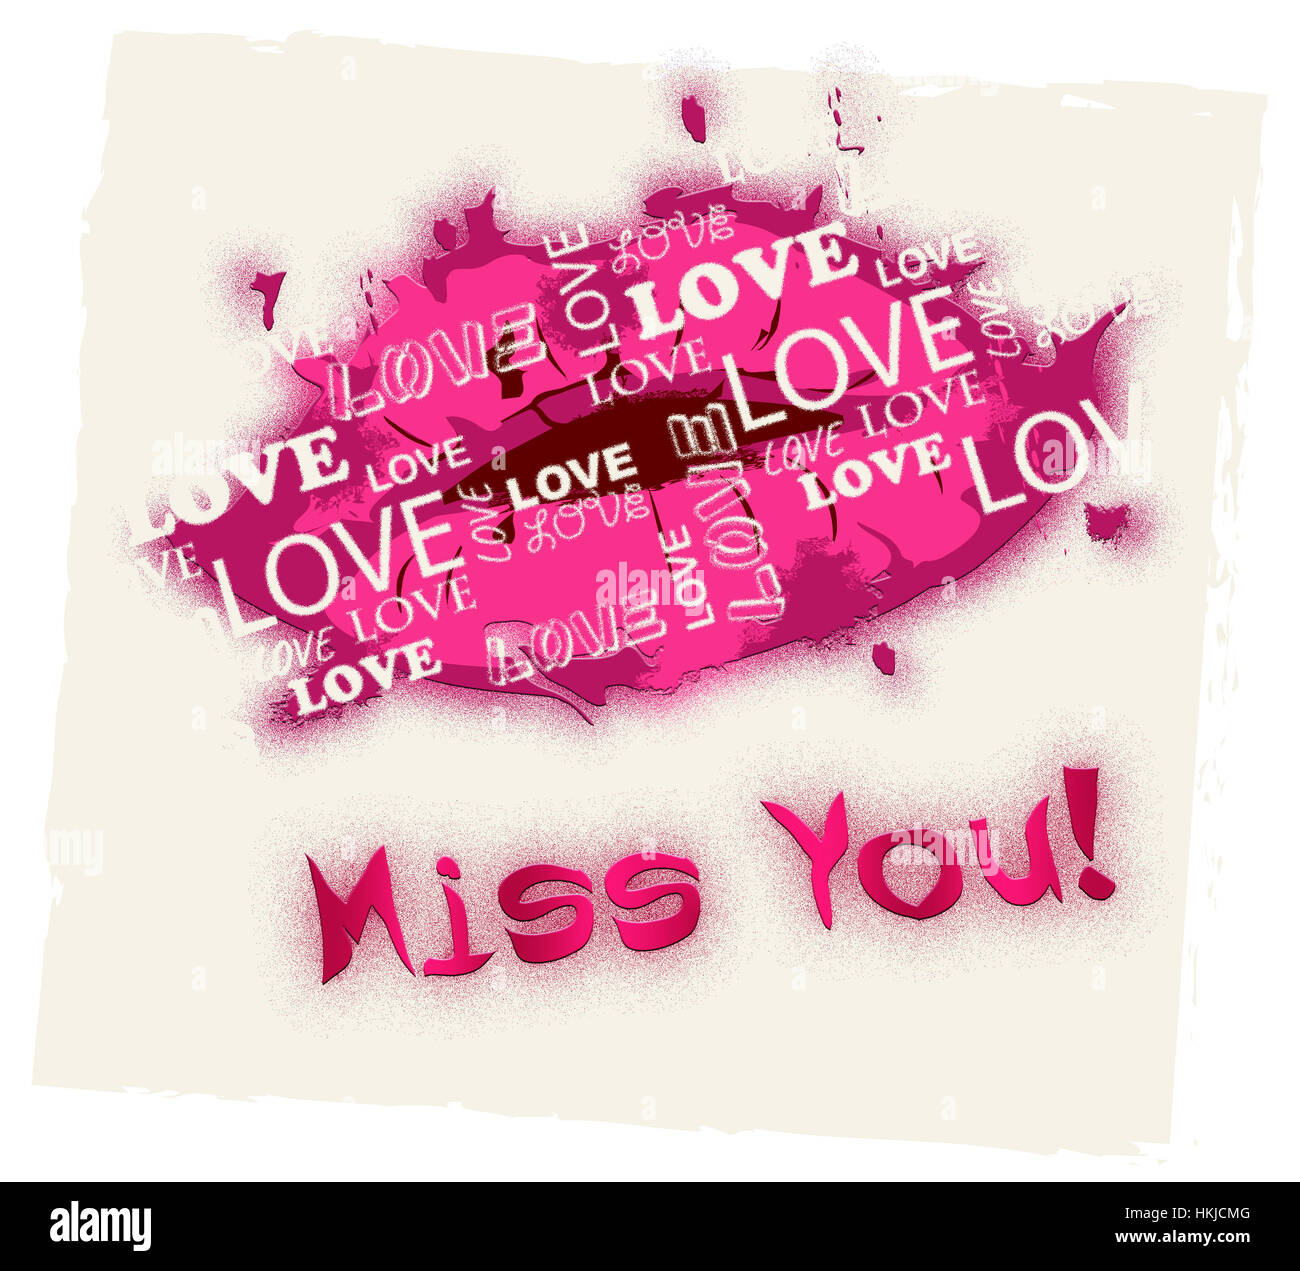 Miss You Lips Meaning Absense Love And Longing Stock Photo